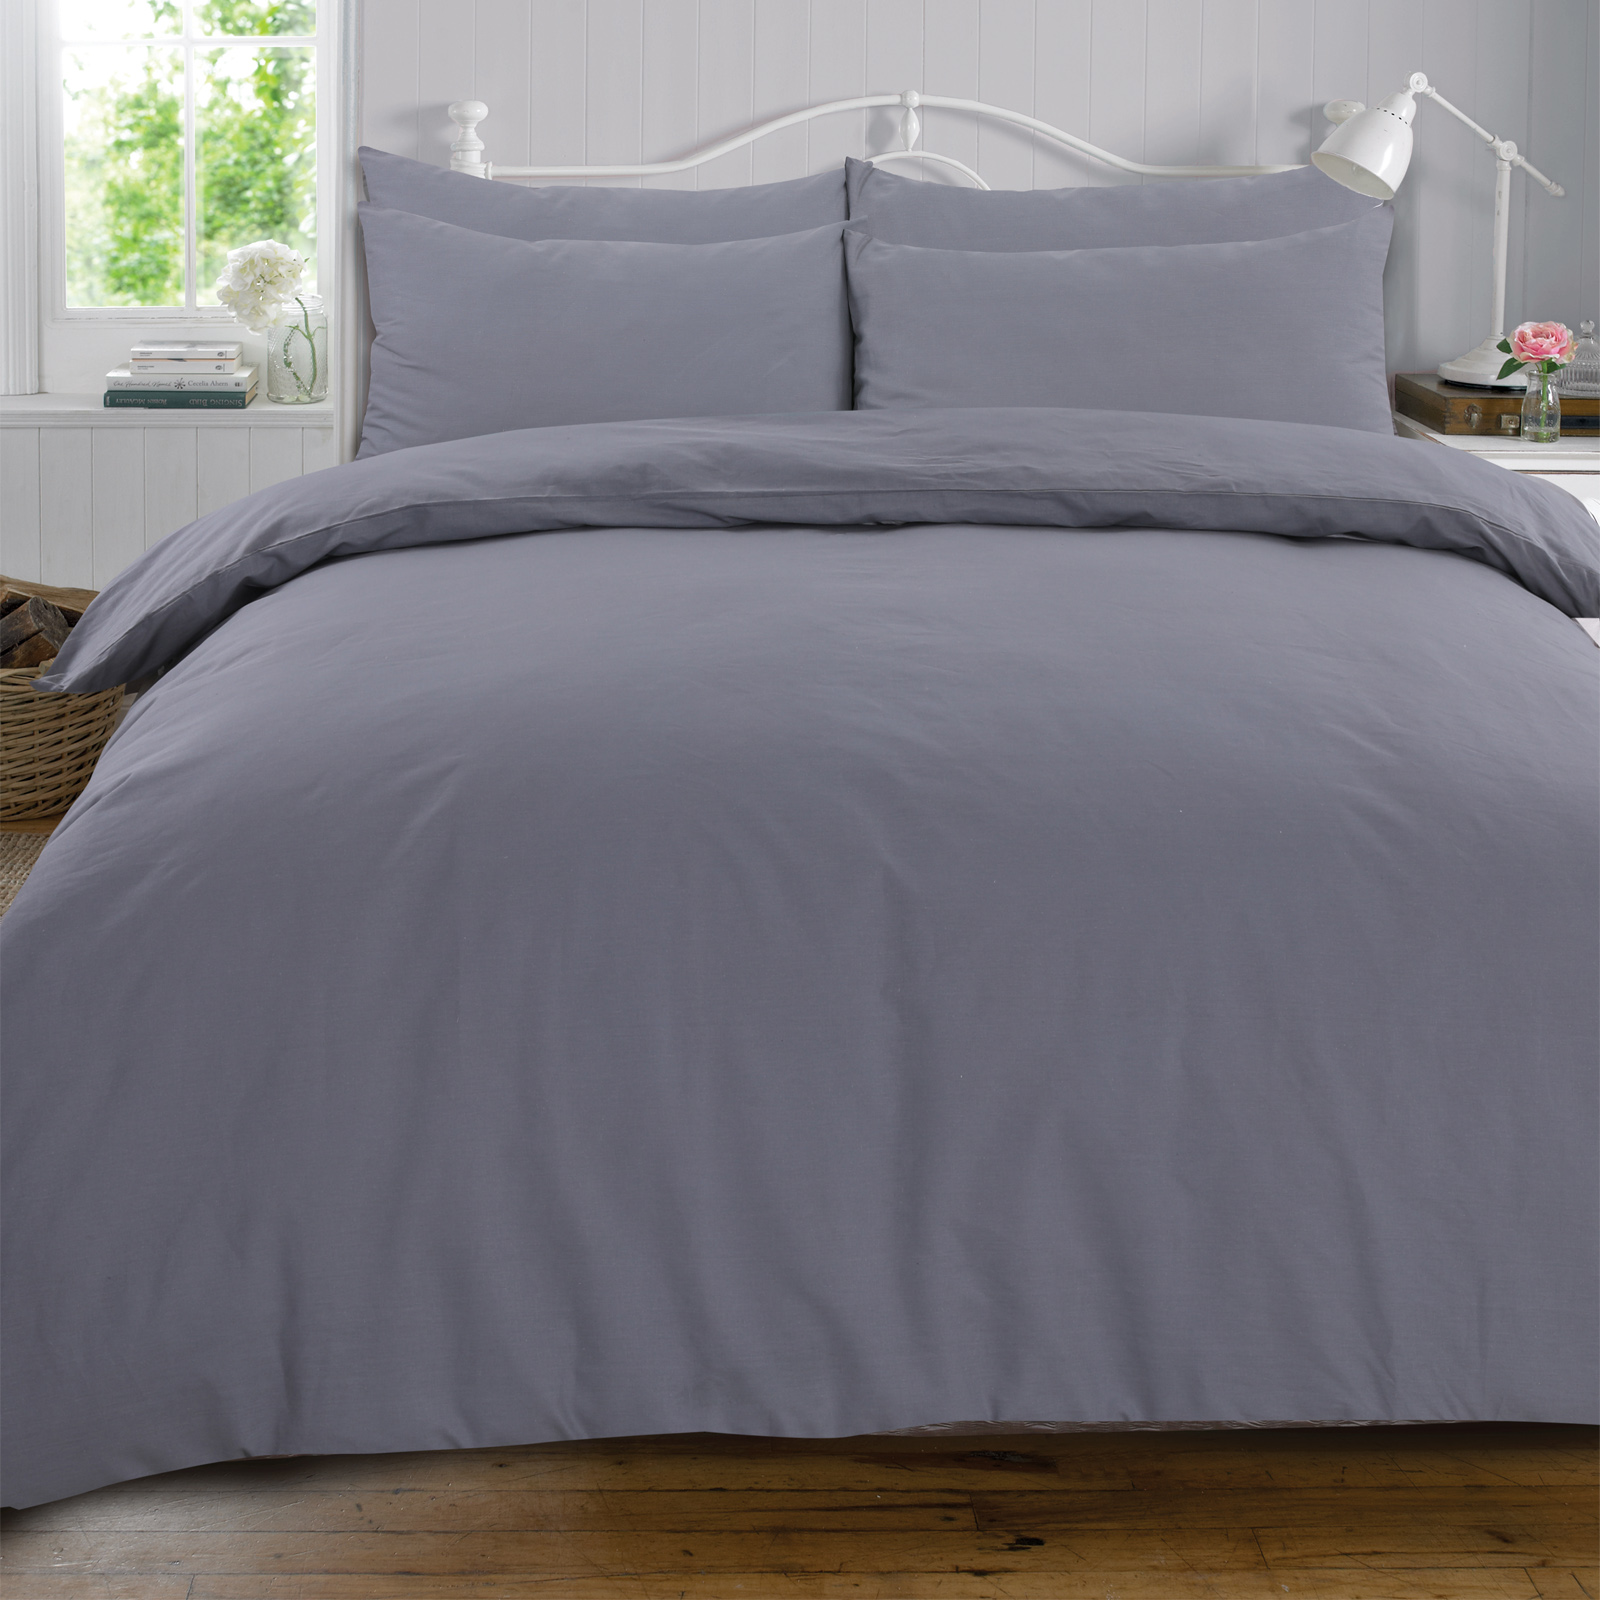 Highams-100-Cotton-COMPLETE-Duvet-Cover-and-Pillowcase-Fitted-Sheet-Bedding-Set